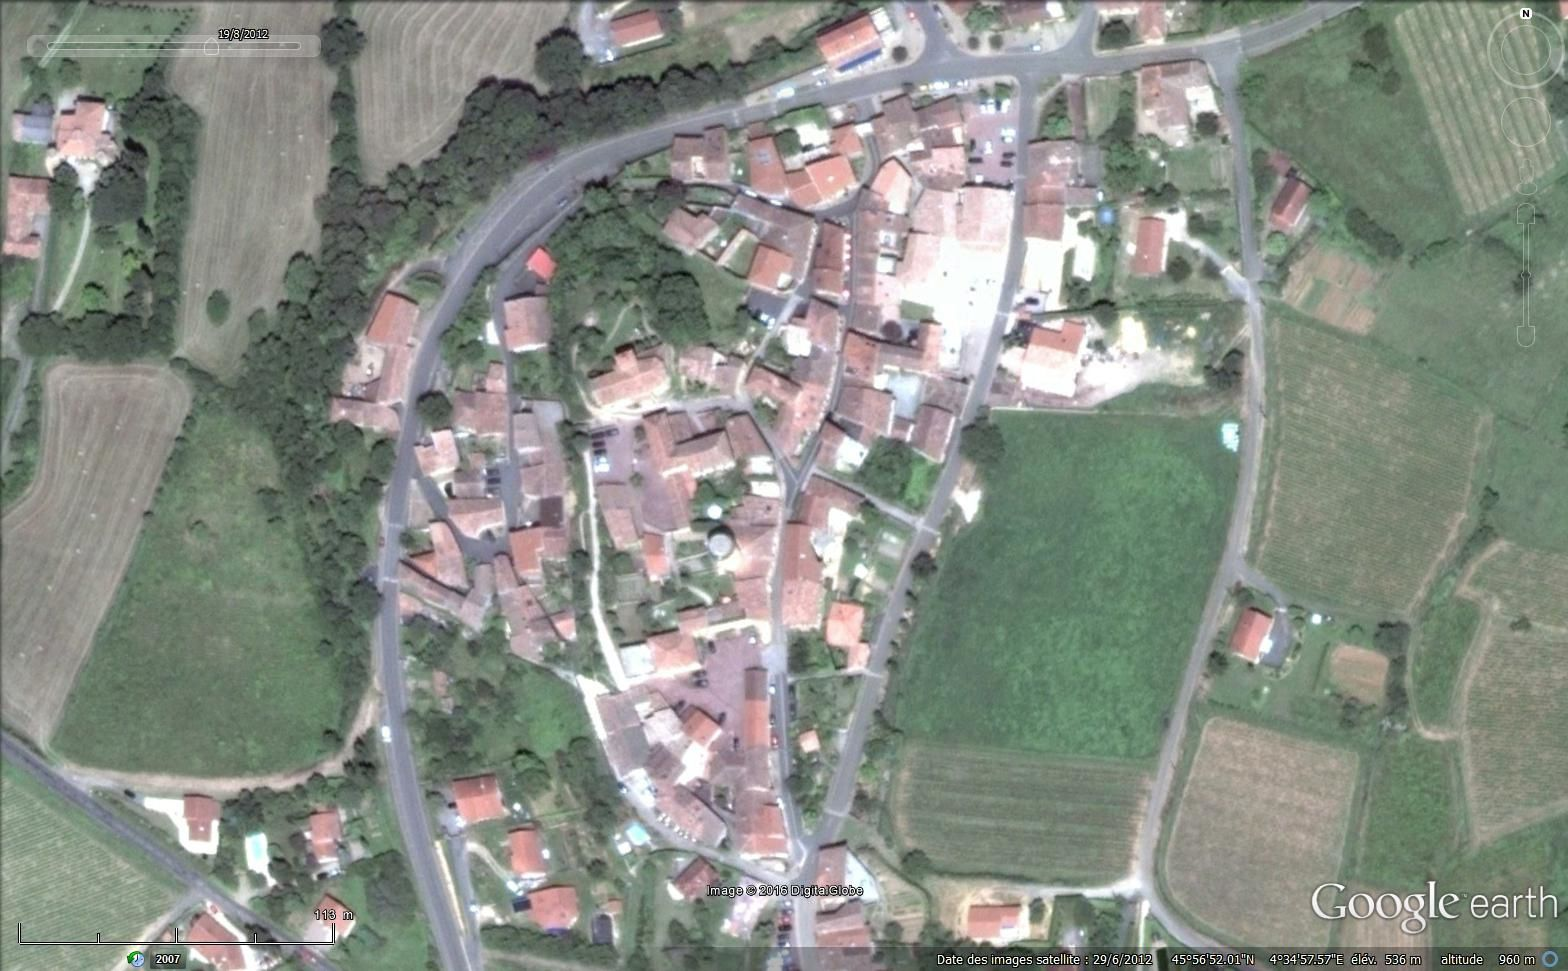 Vue satellitaire via Google earth